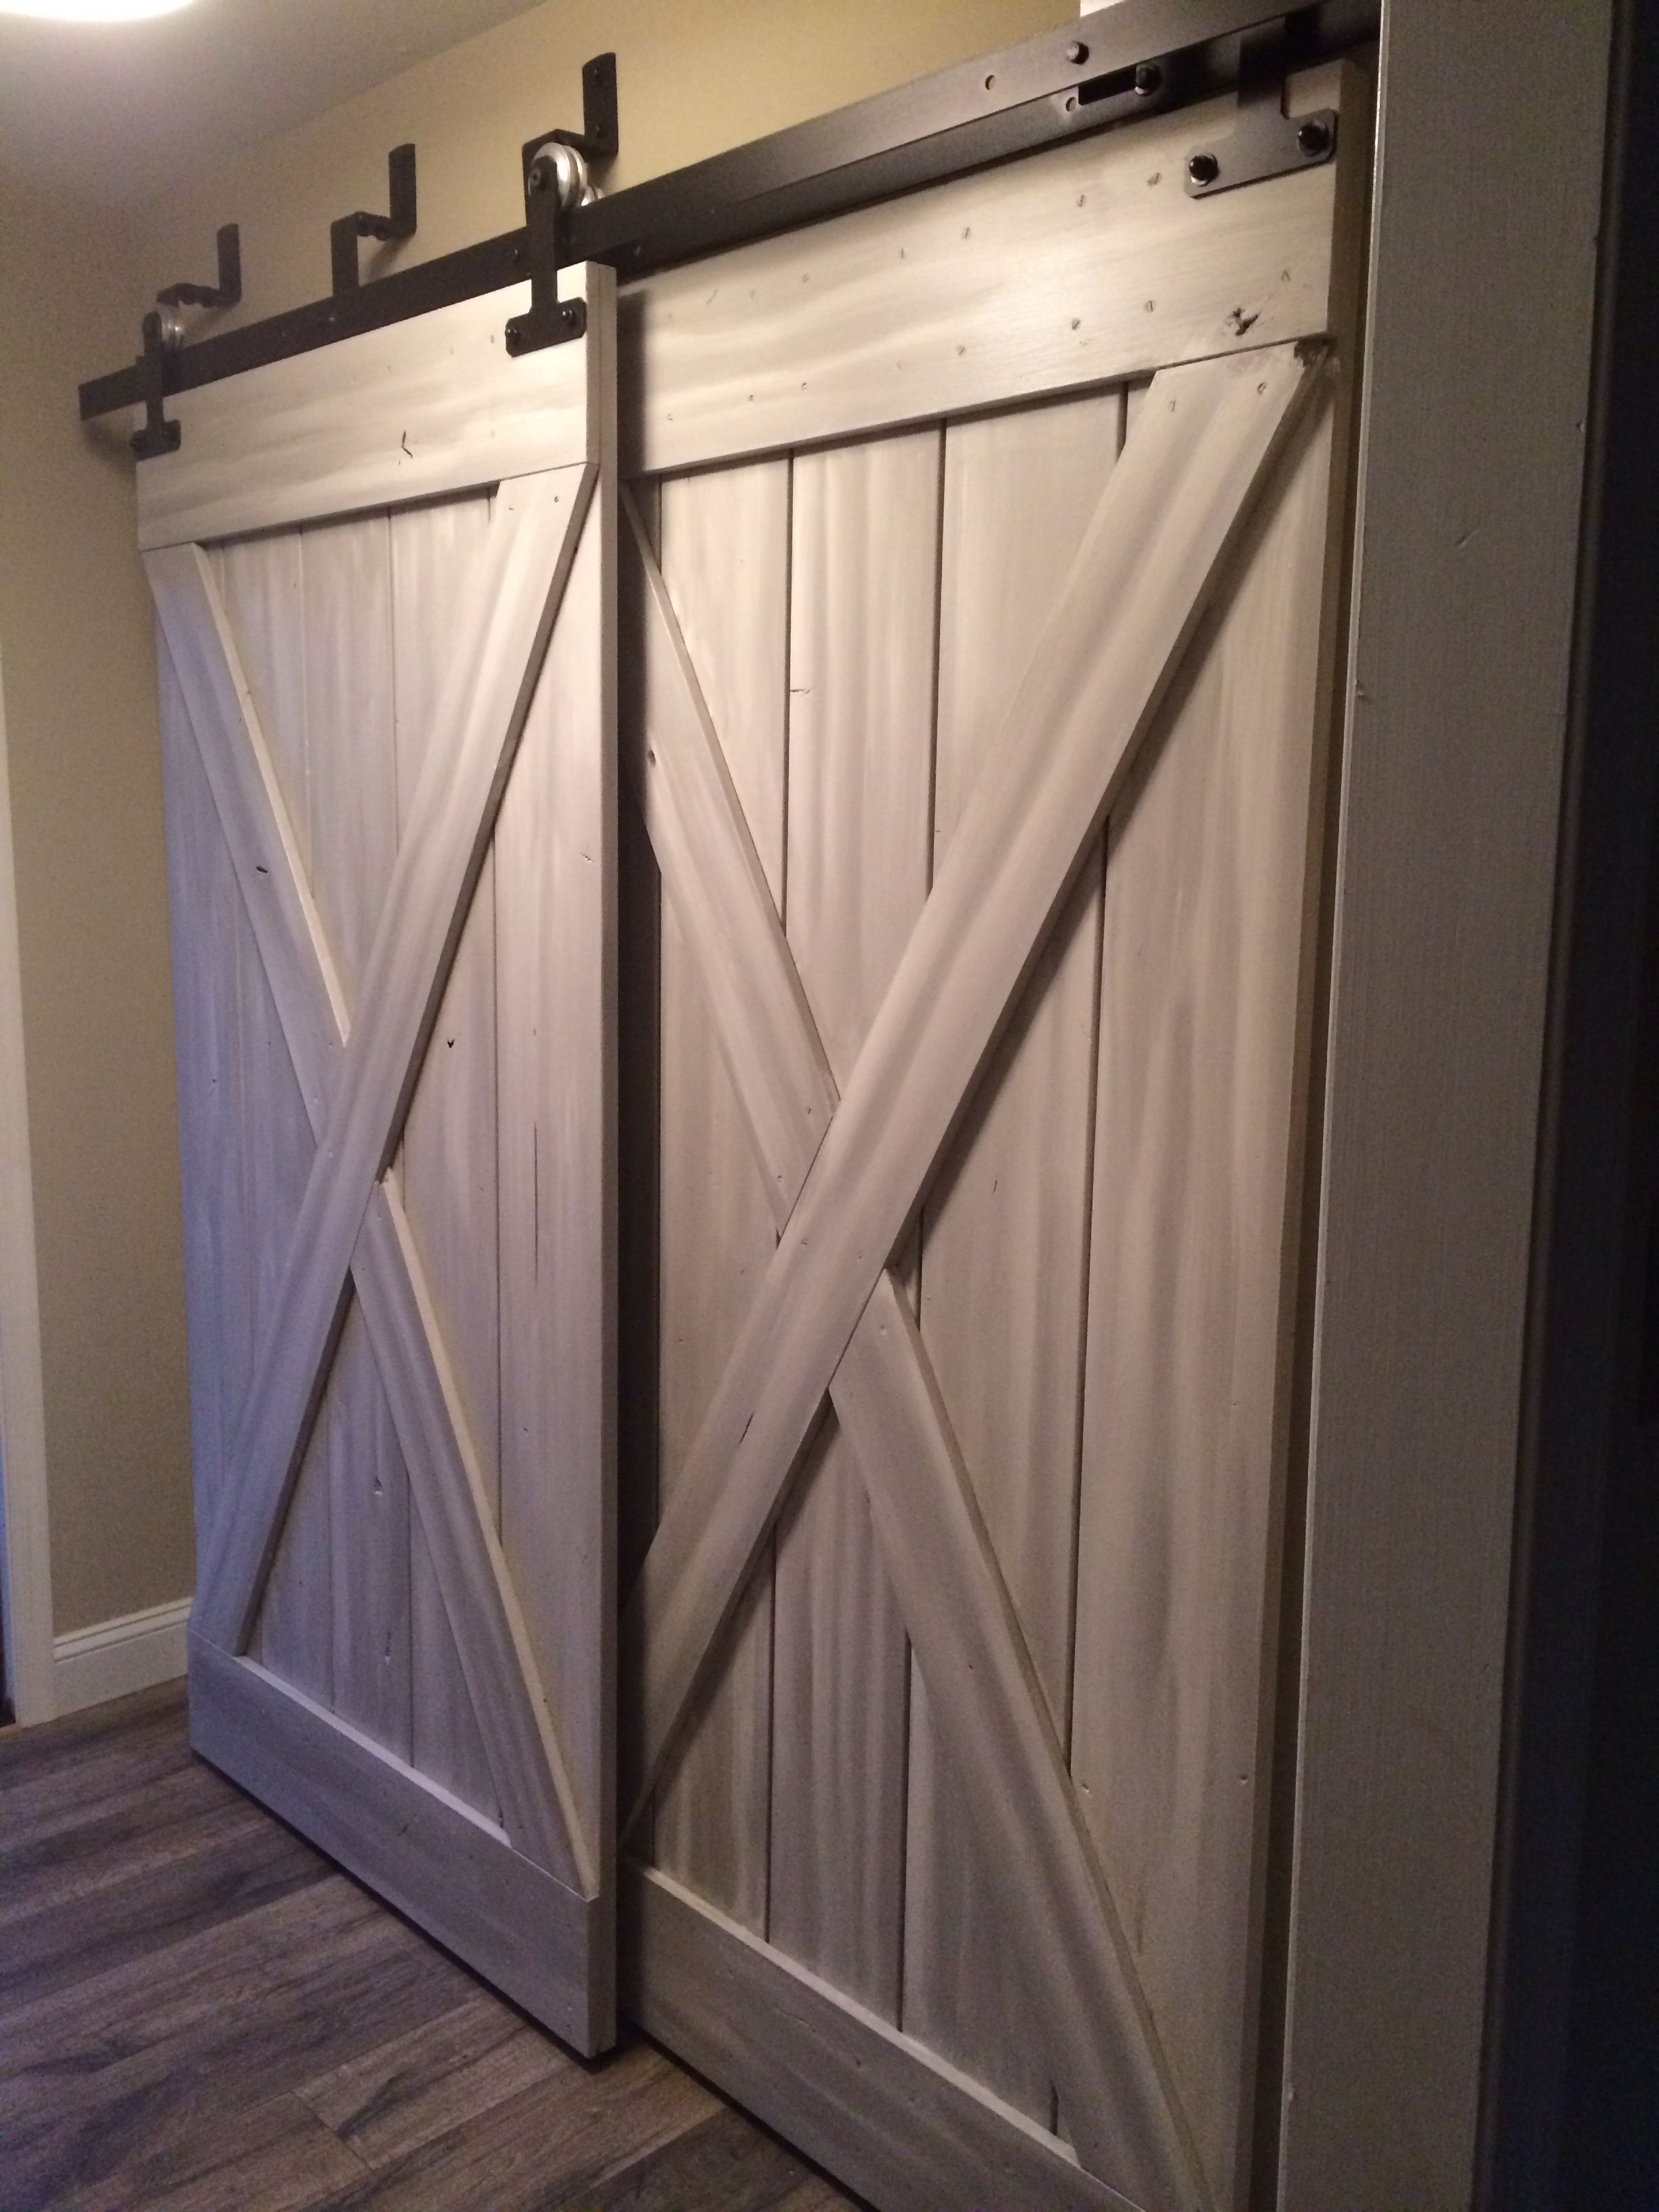 Barn Door Design For Bypass Closet Doors N V With Images